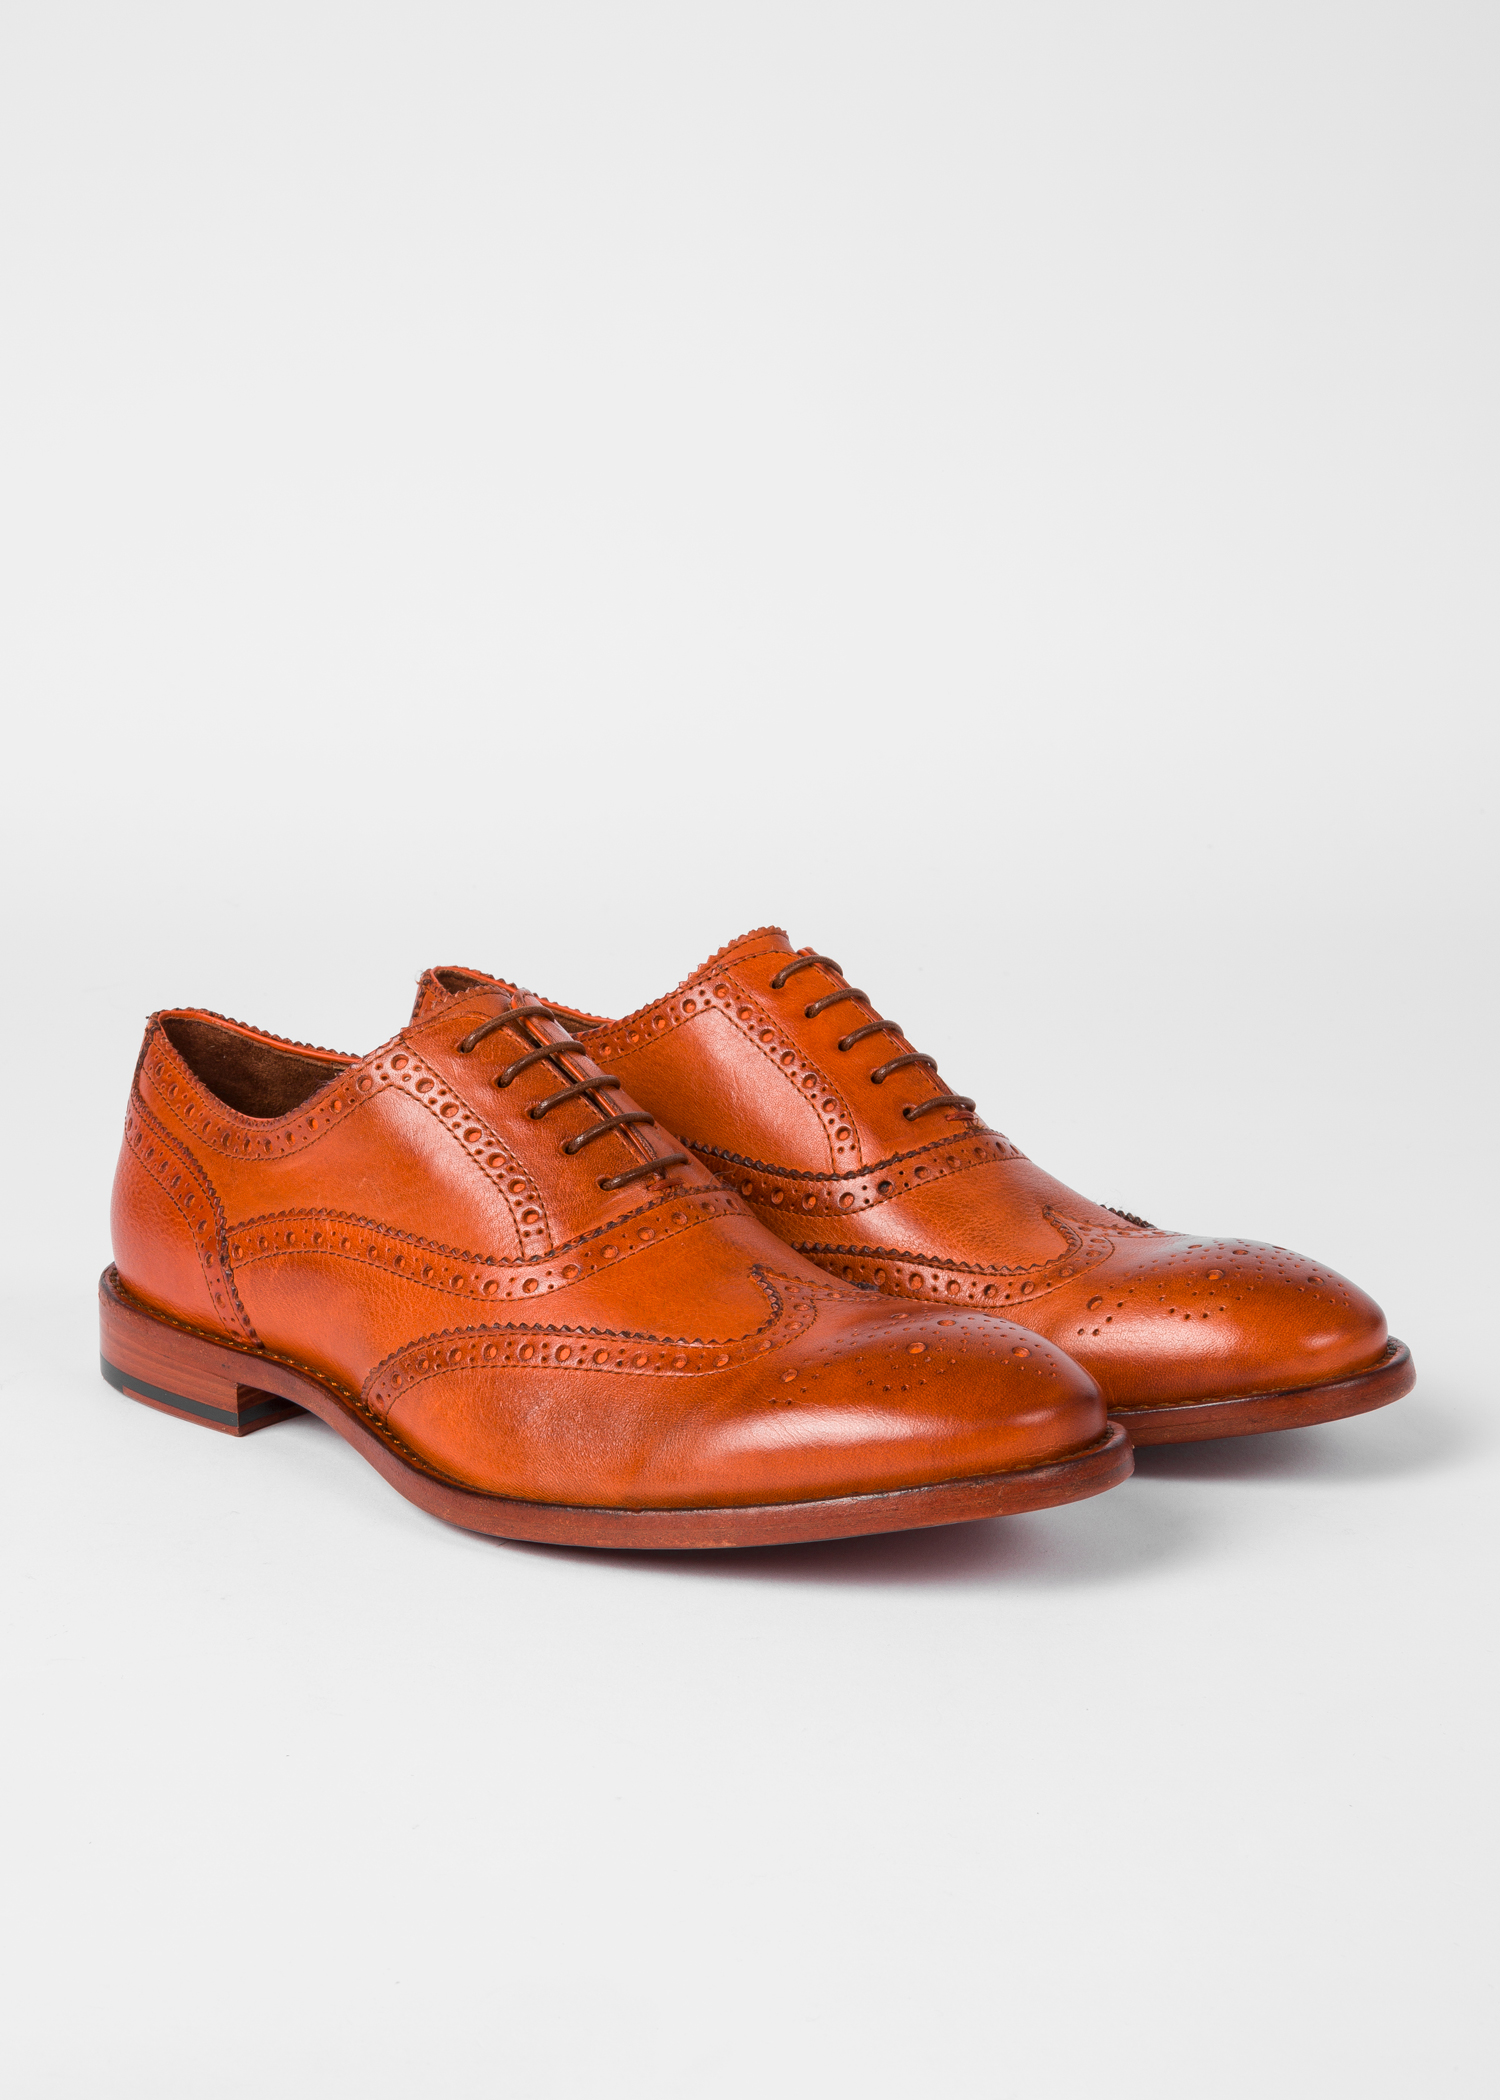 c1d99853f54 Men's Tan Leather 'Munro' Flexible Travel Brogues - Paul Smith